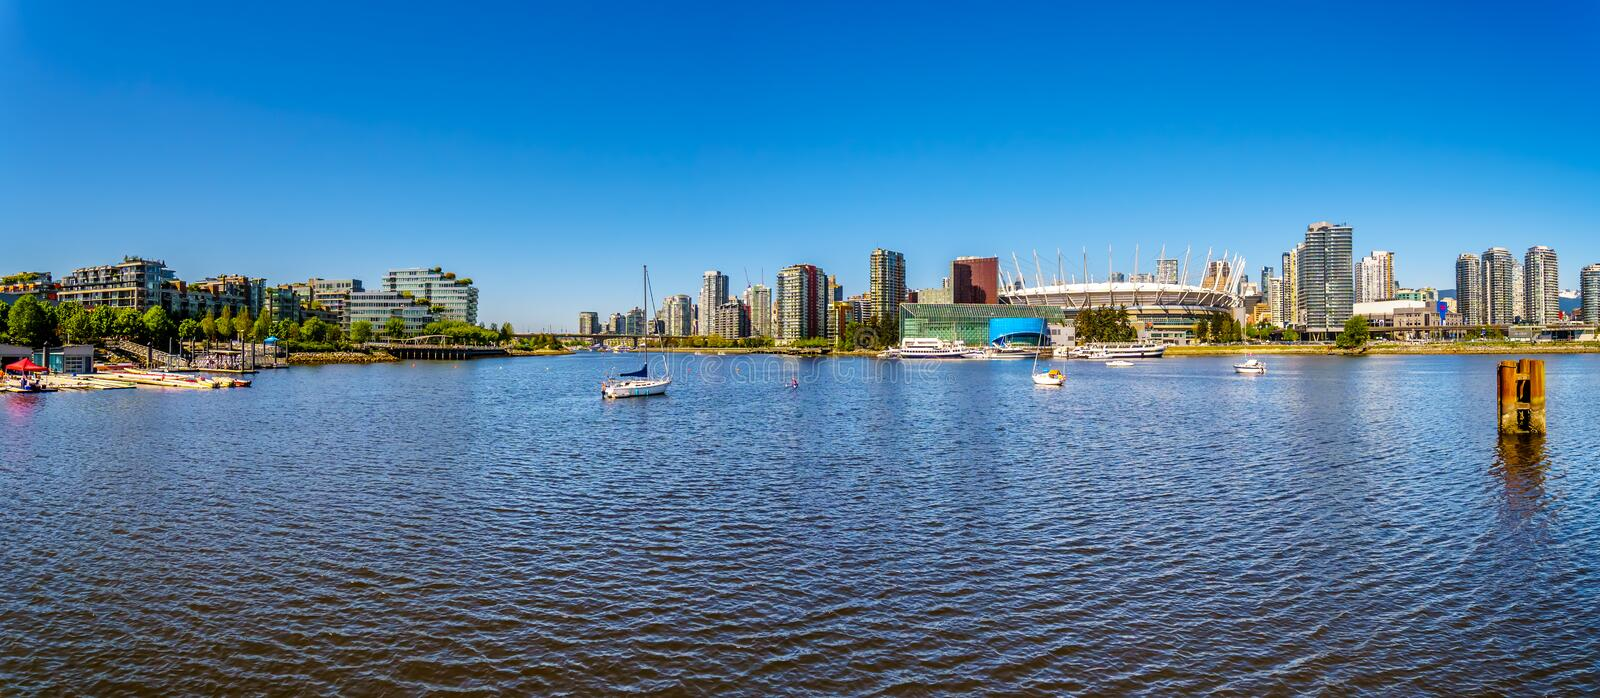 East End of False Creek Inlet in Vancouver British Columbia under clear blue sky royalty free stock photography